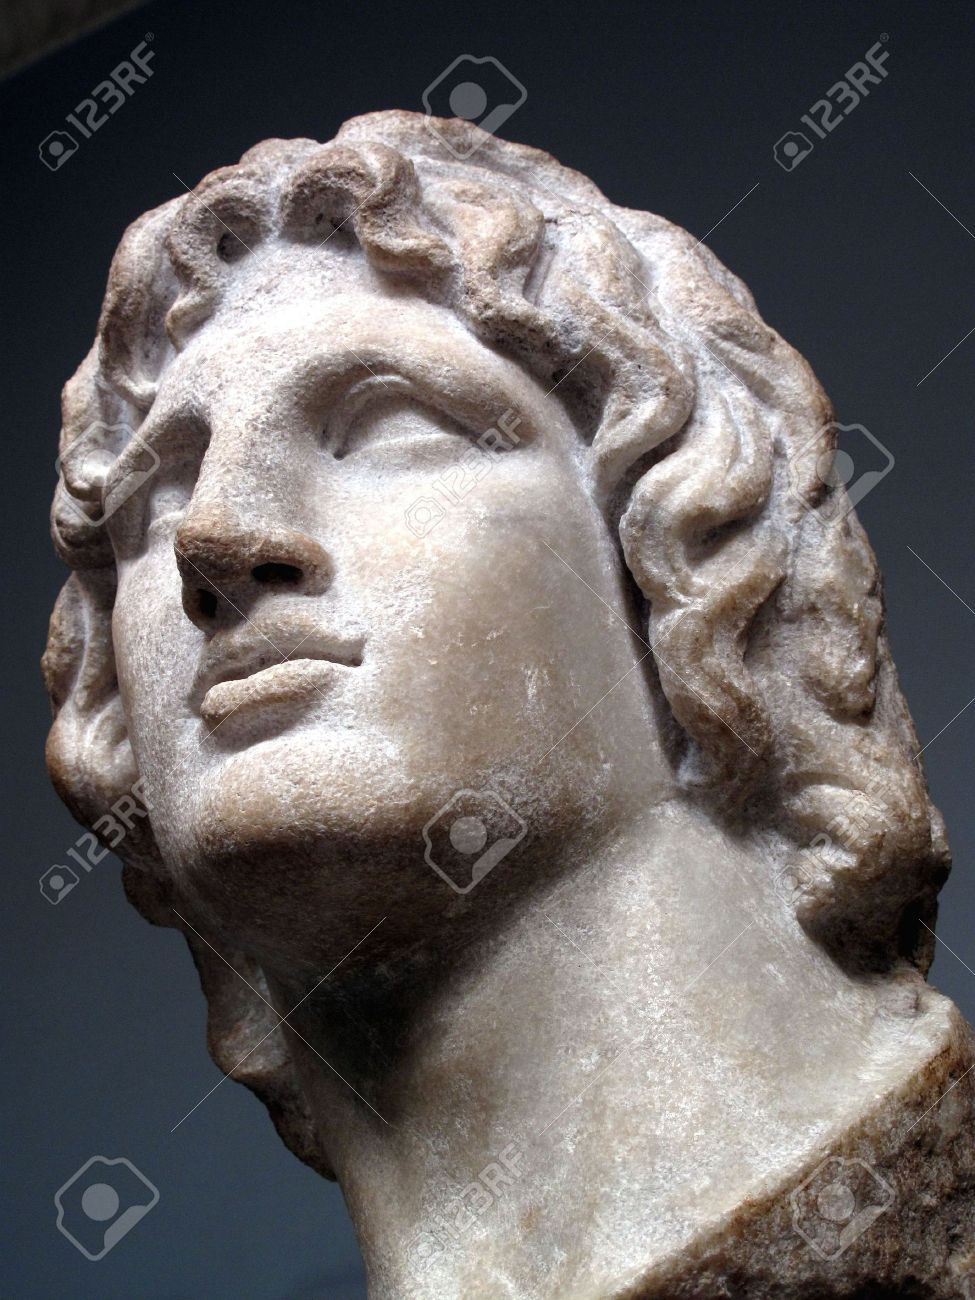 Alexander the great 356 323 bc born in pela the capital of macedon alexander the great 356 323 bc born in pela the capital of macedon was the kristyandbryce Choice Image